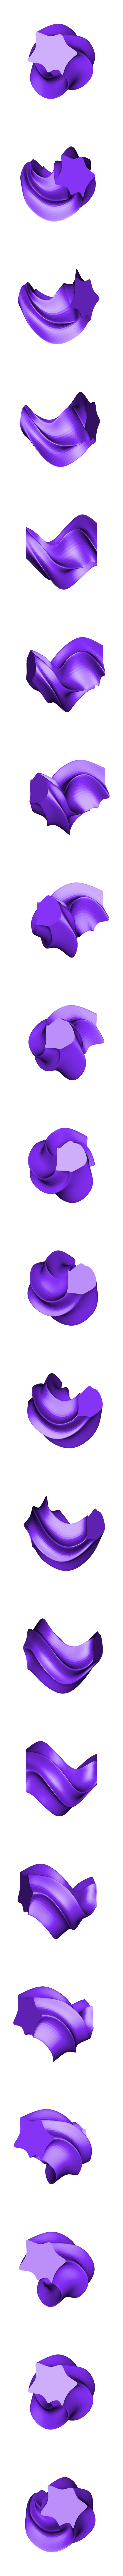 Abstracttwistvase.stl Download free STL file Abstract Twist Vase • 3D printing model, ChrisBobo